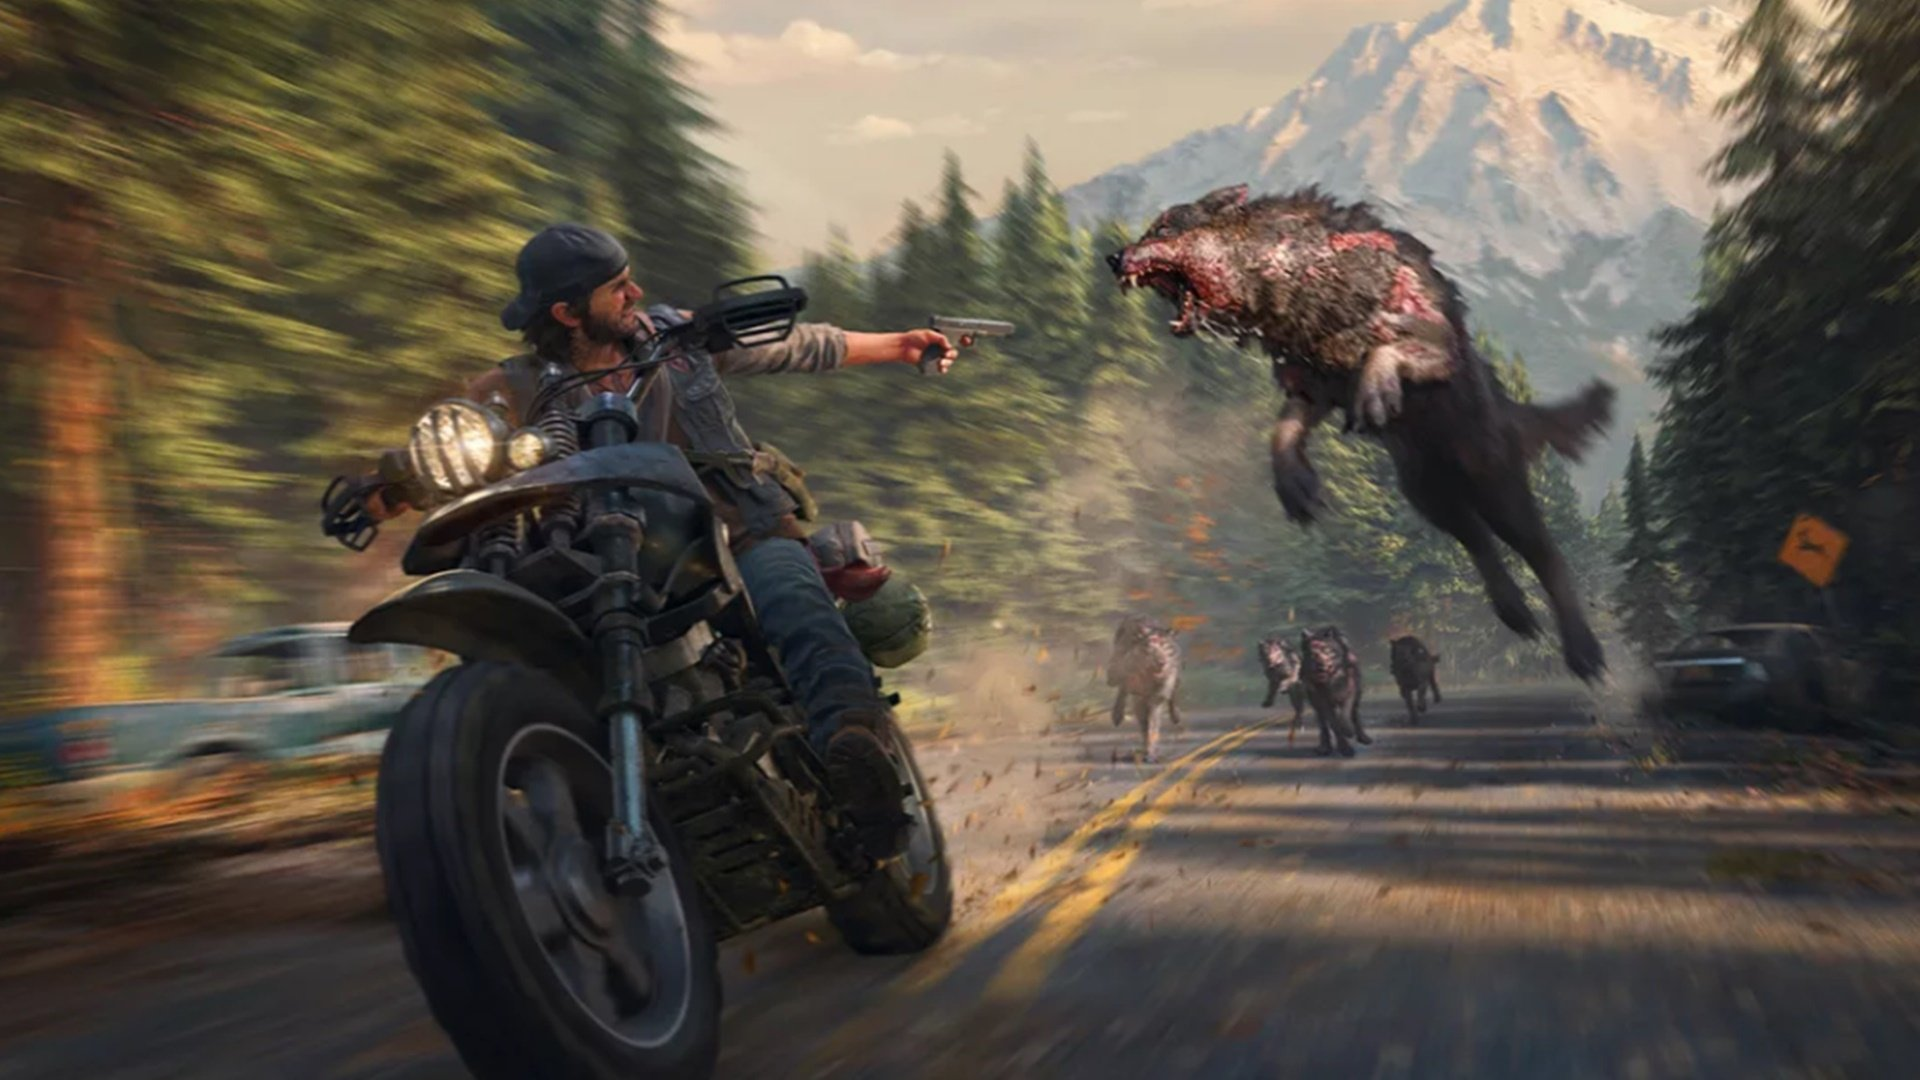 Days Gone's 1 06 Patch Is Reportedly Crashing Some PS4s - Push Square